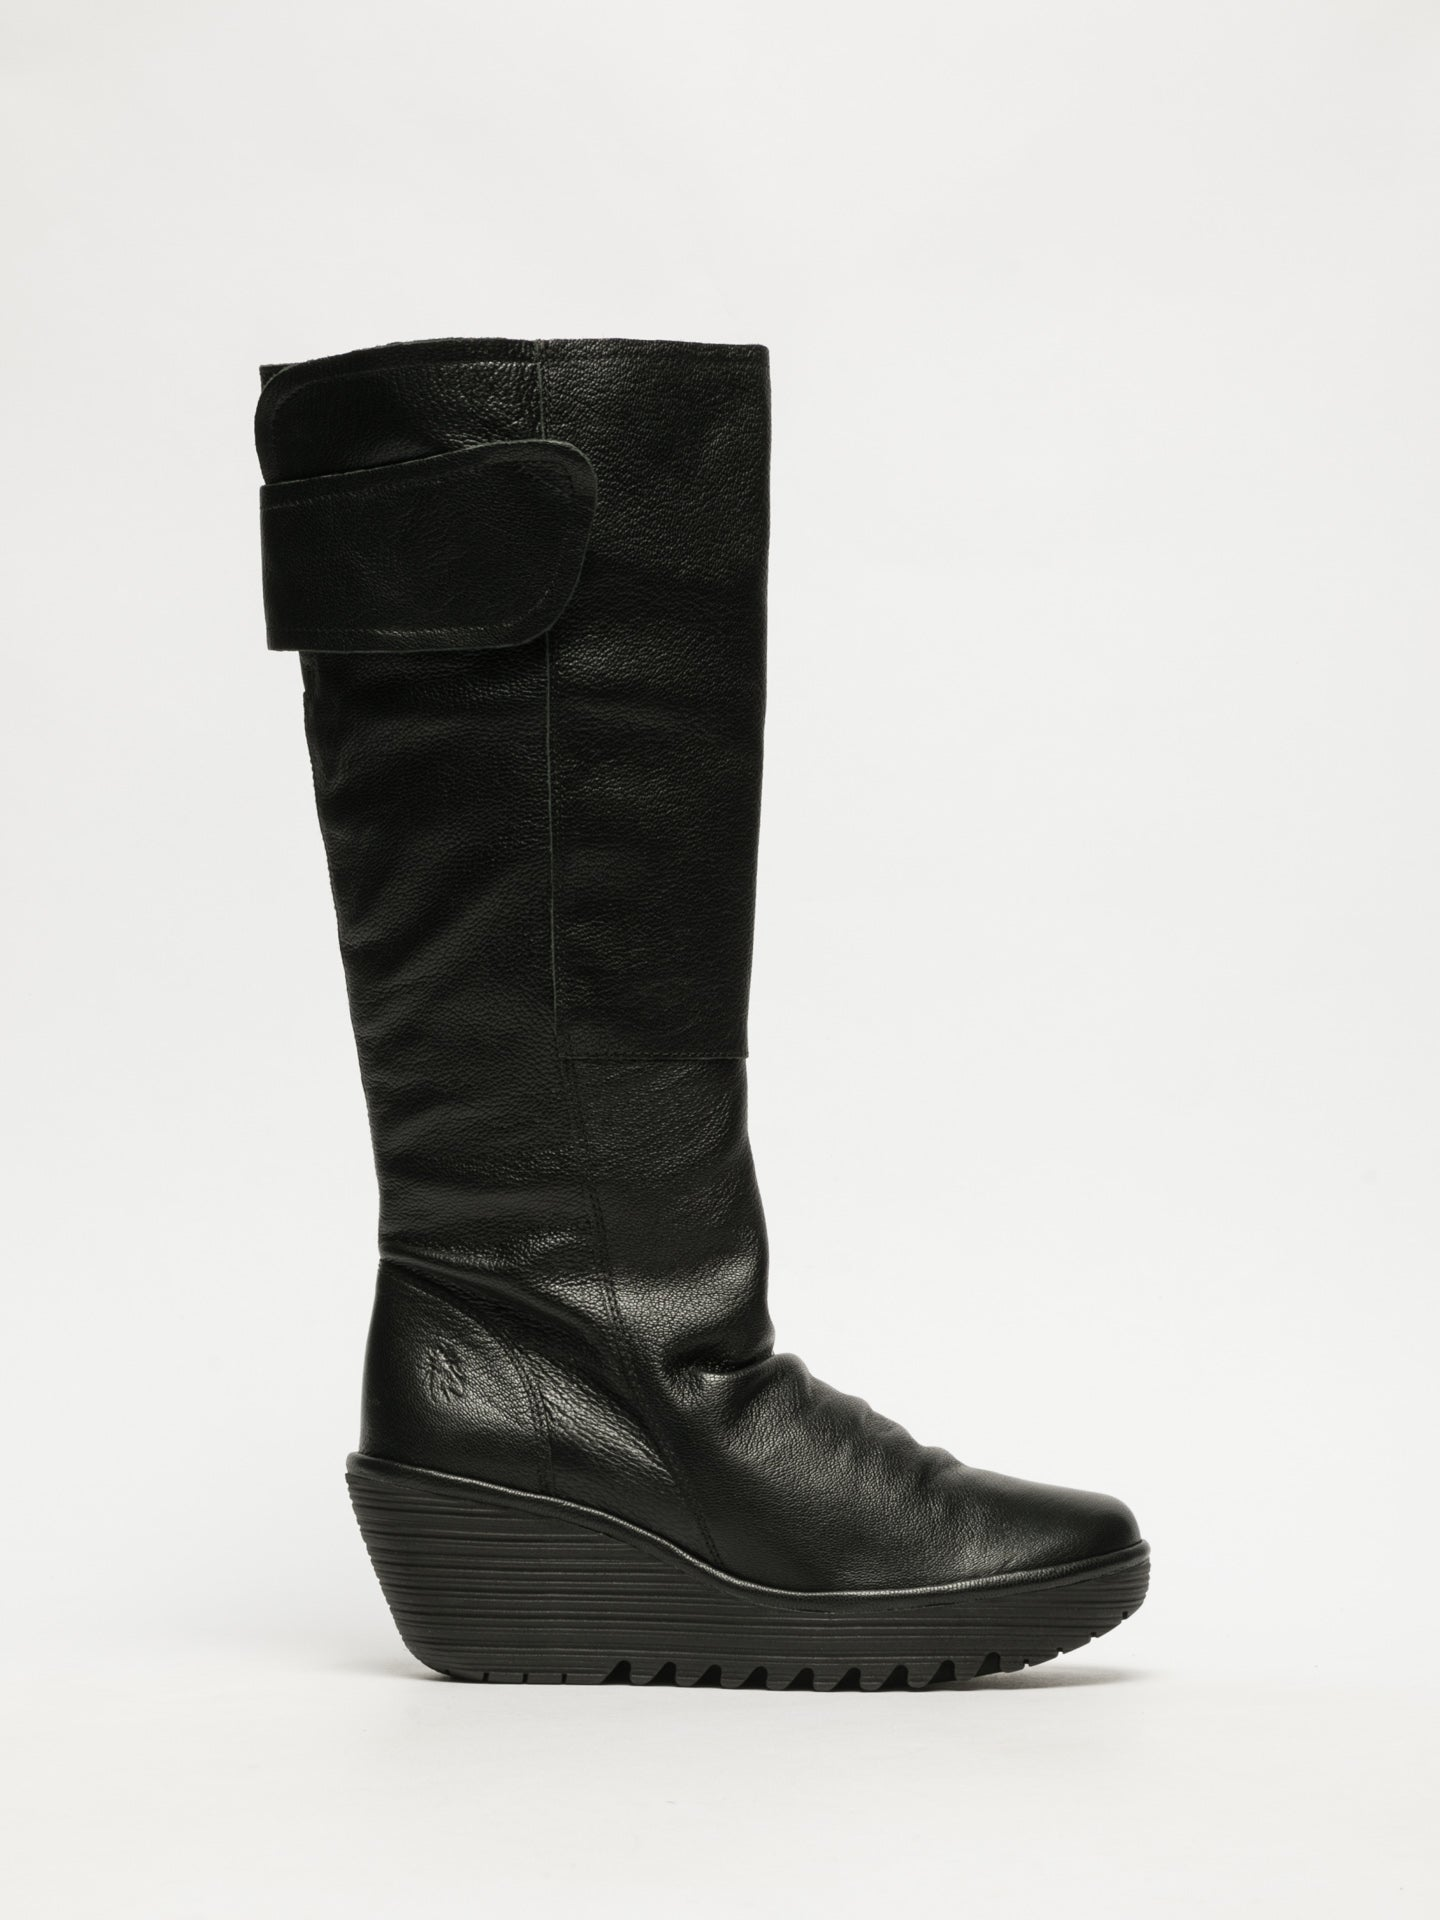 Fly London Black Velcro Boots